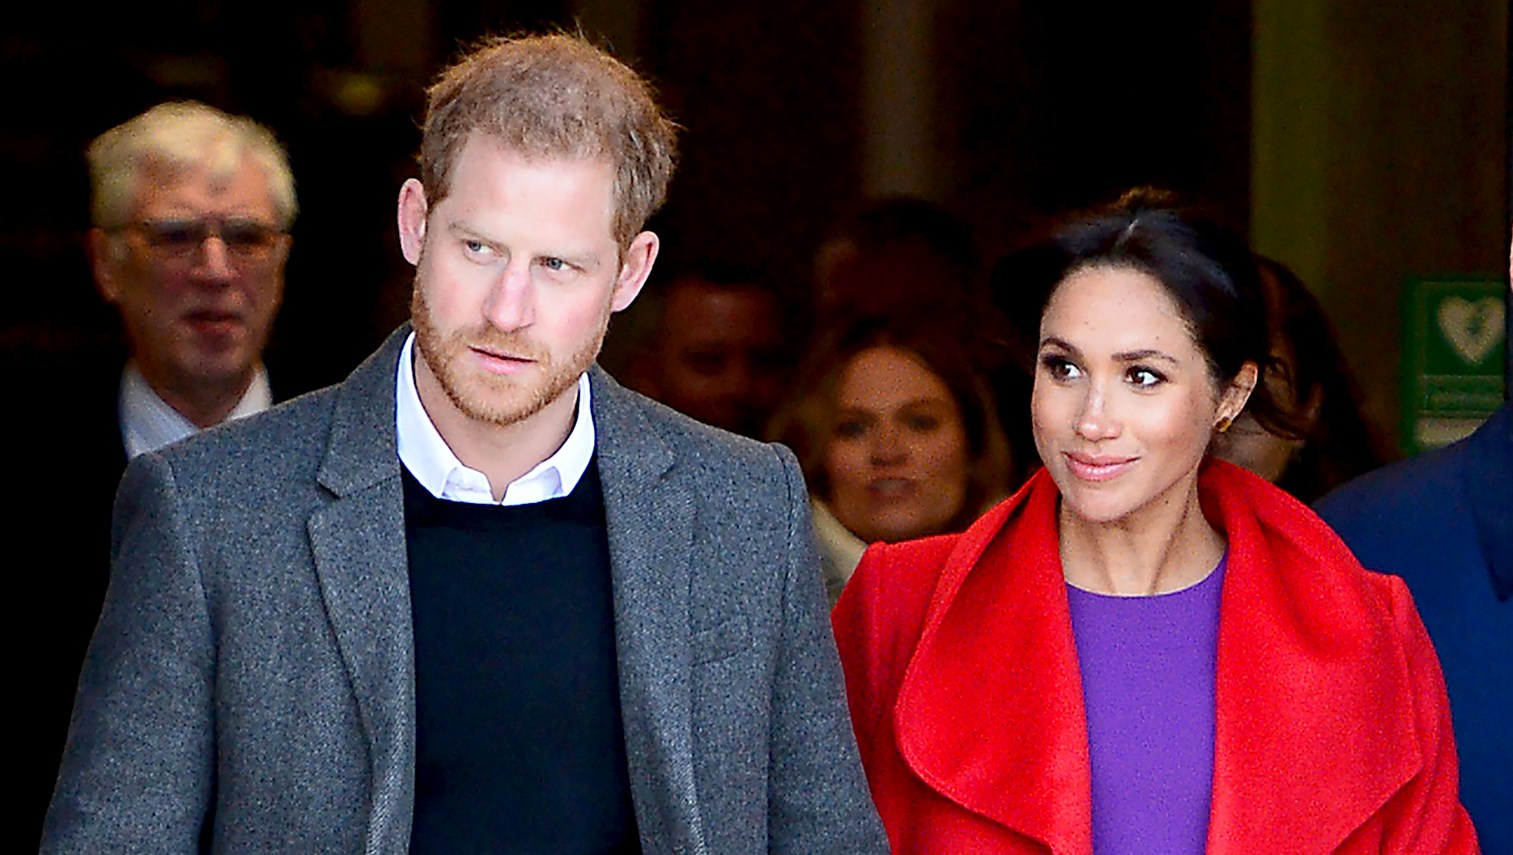 Man-Claims-Prince-Harry-and-Duchess-Meghan-Stole-His-Instagram-Handle